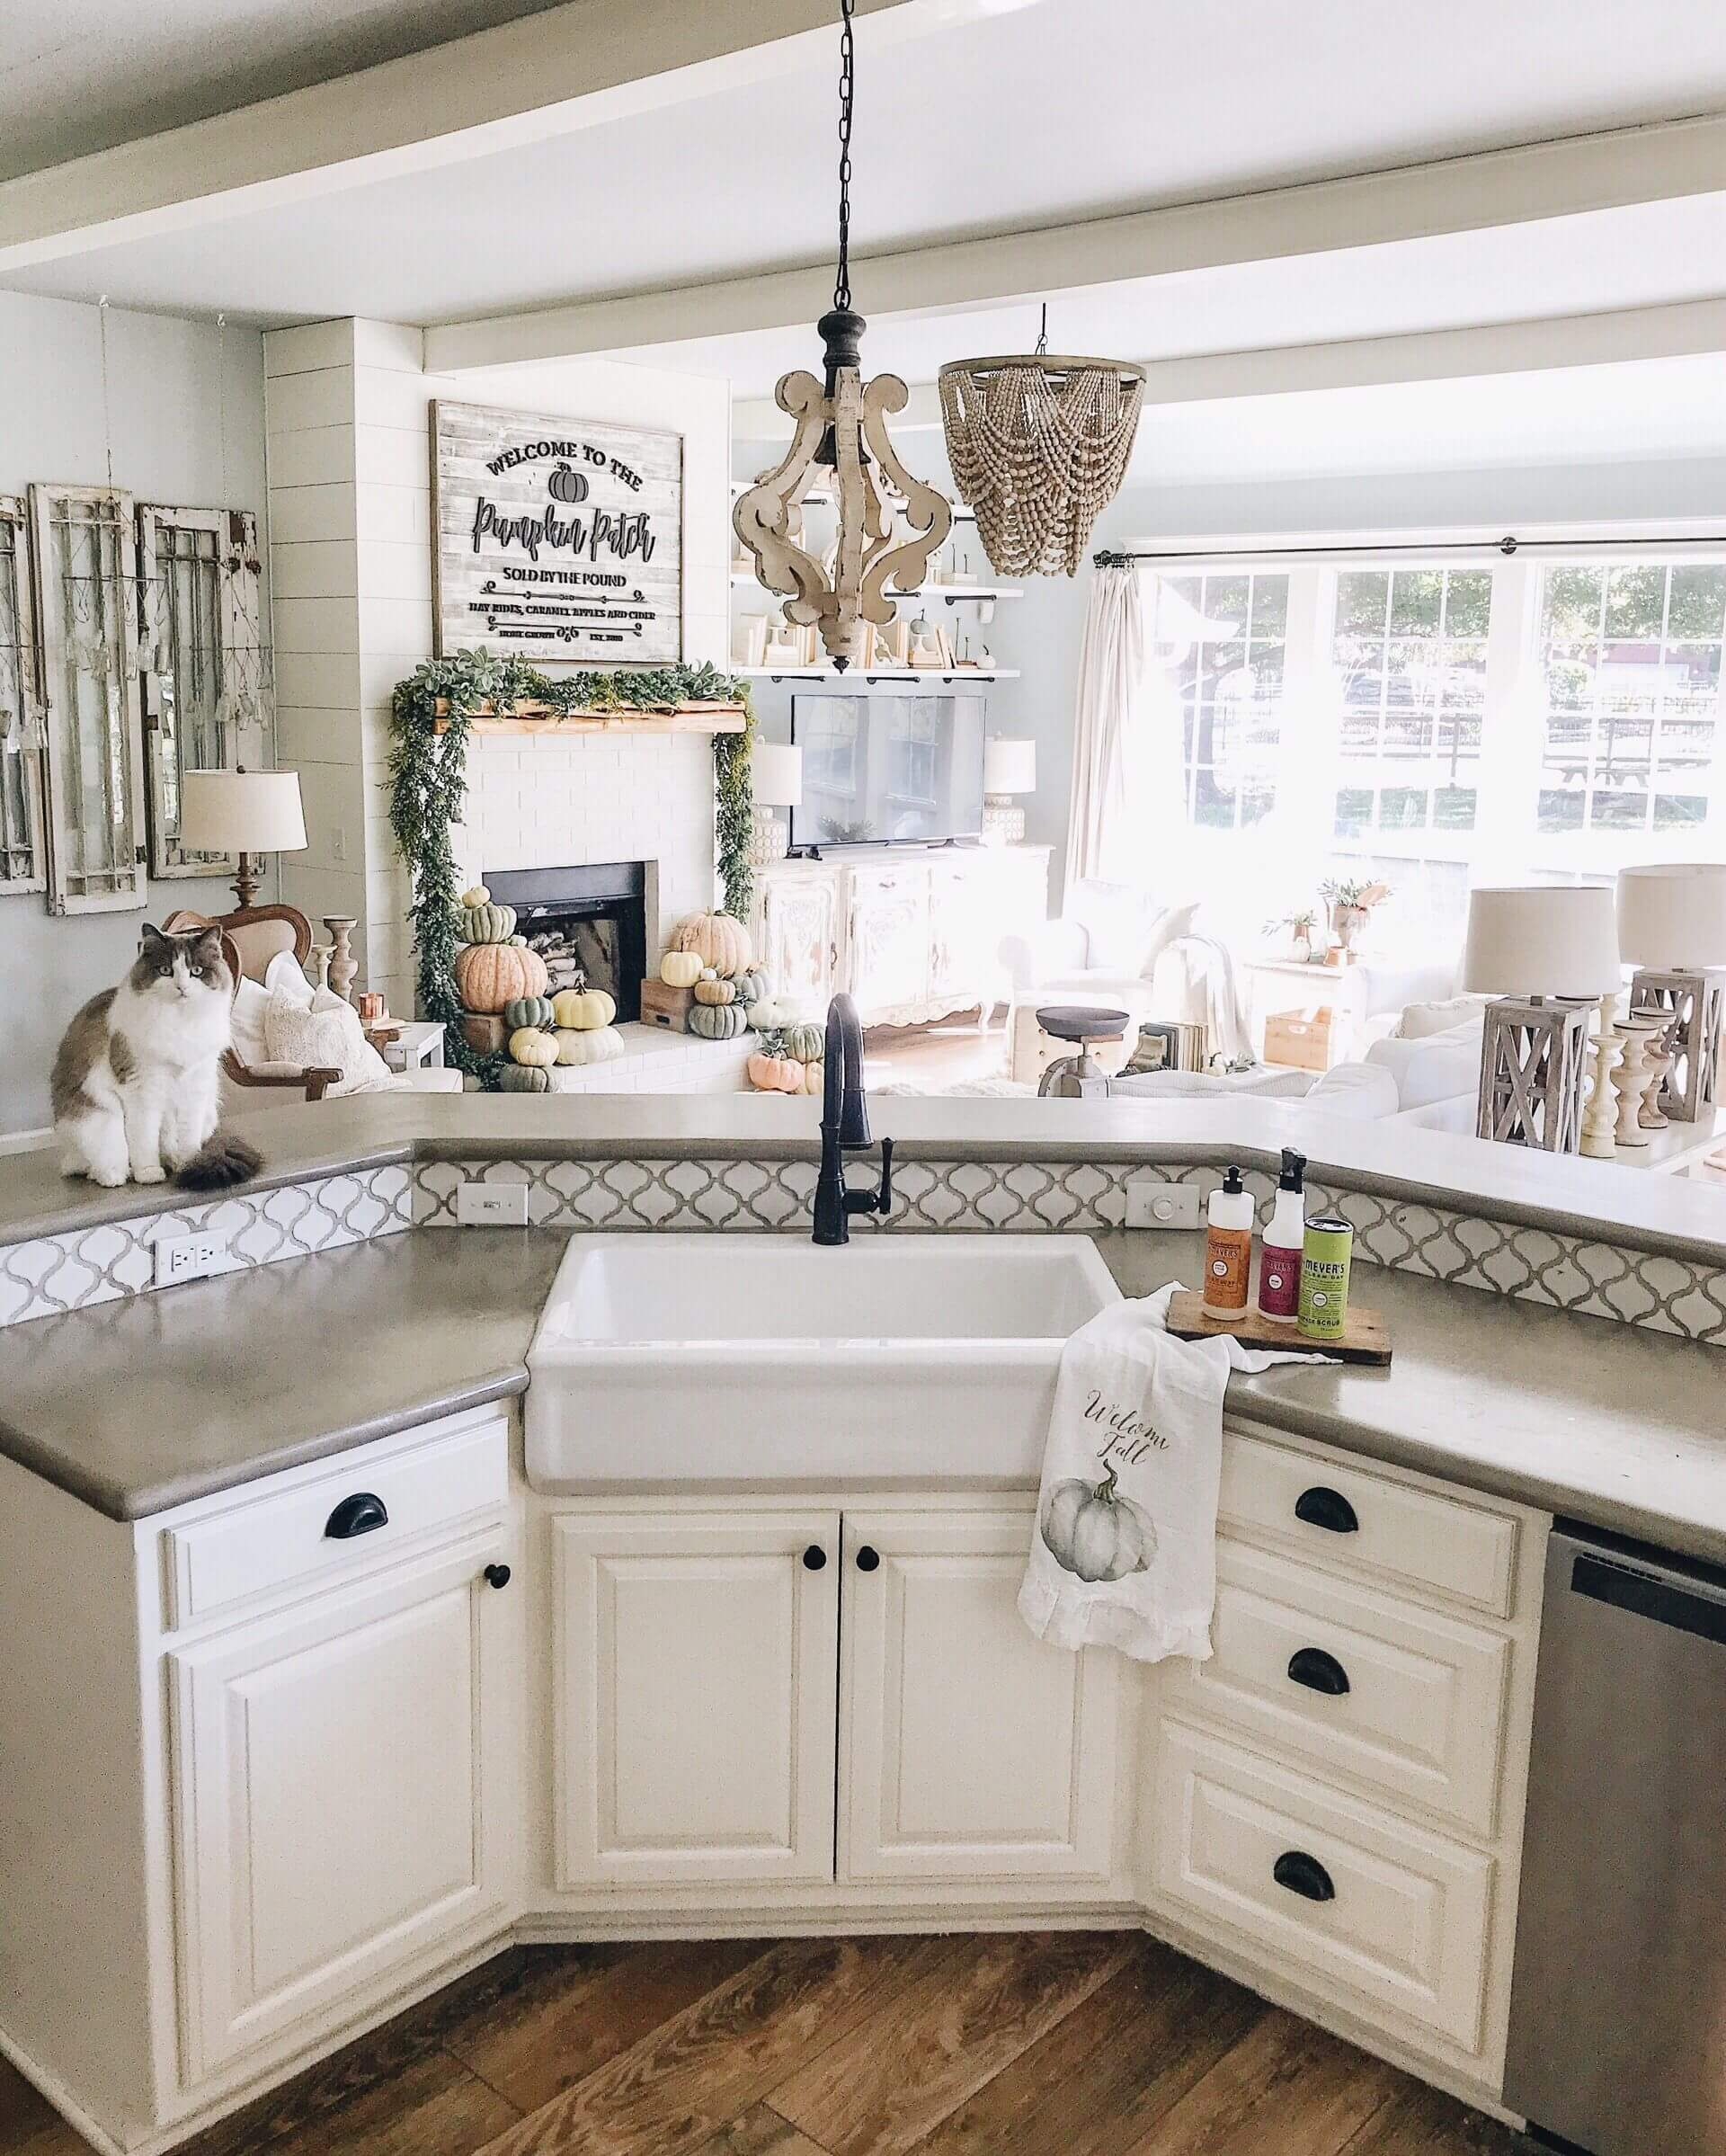 26 Farmhouse Kitchen Sink Ideas And Designs For 2020